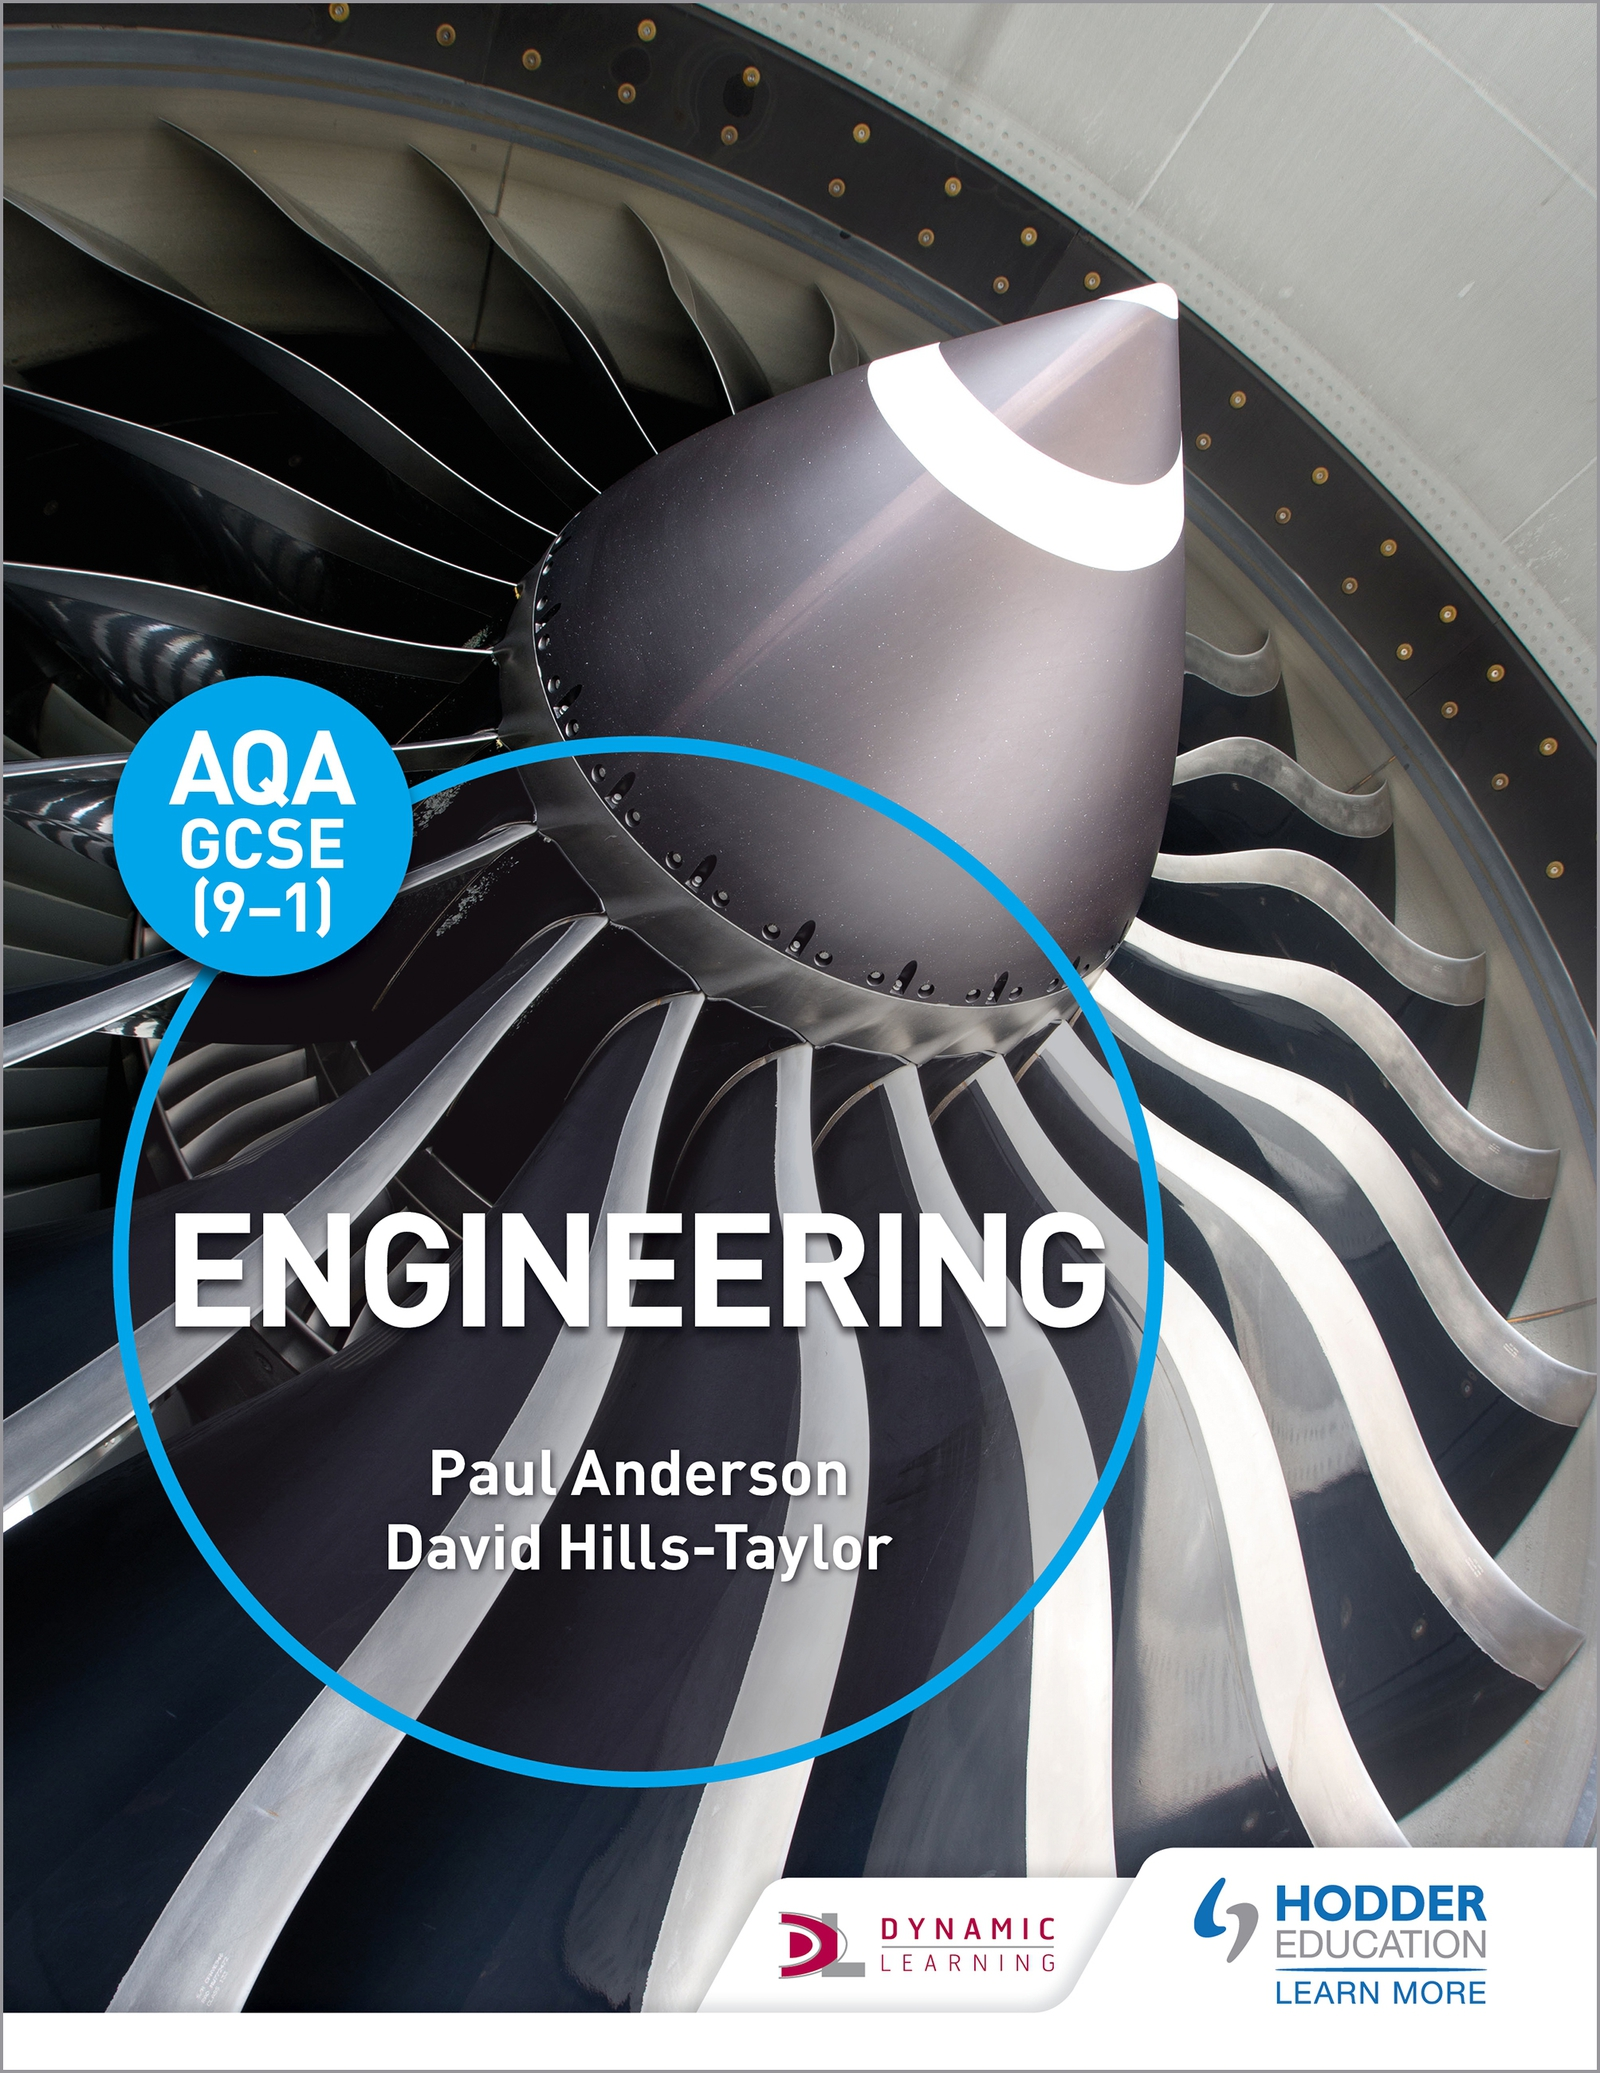 AQA GCSE (9-1) Engineering